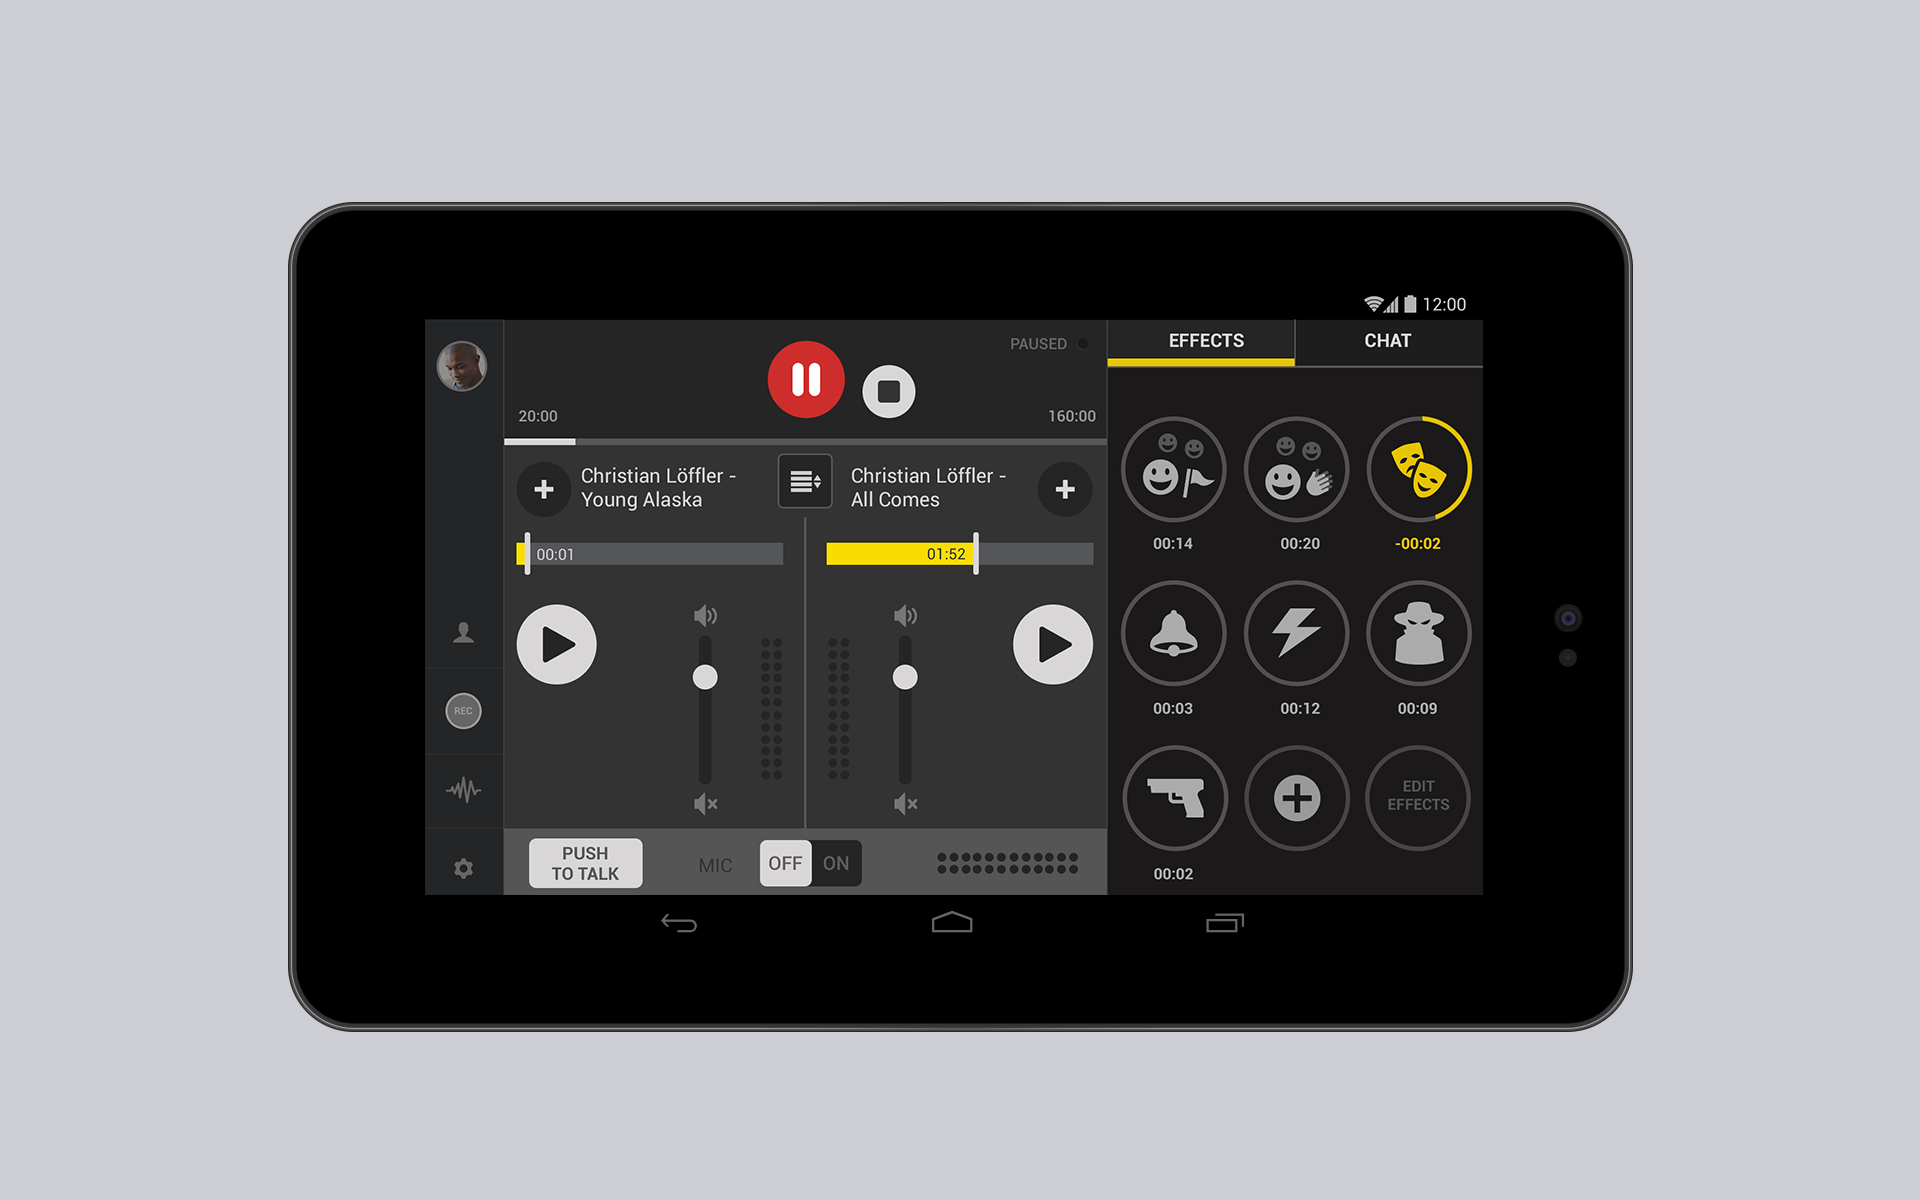 Spreaker Studio: Broadcast Live From Your Android Device